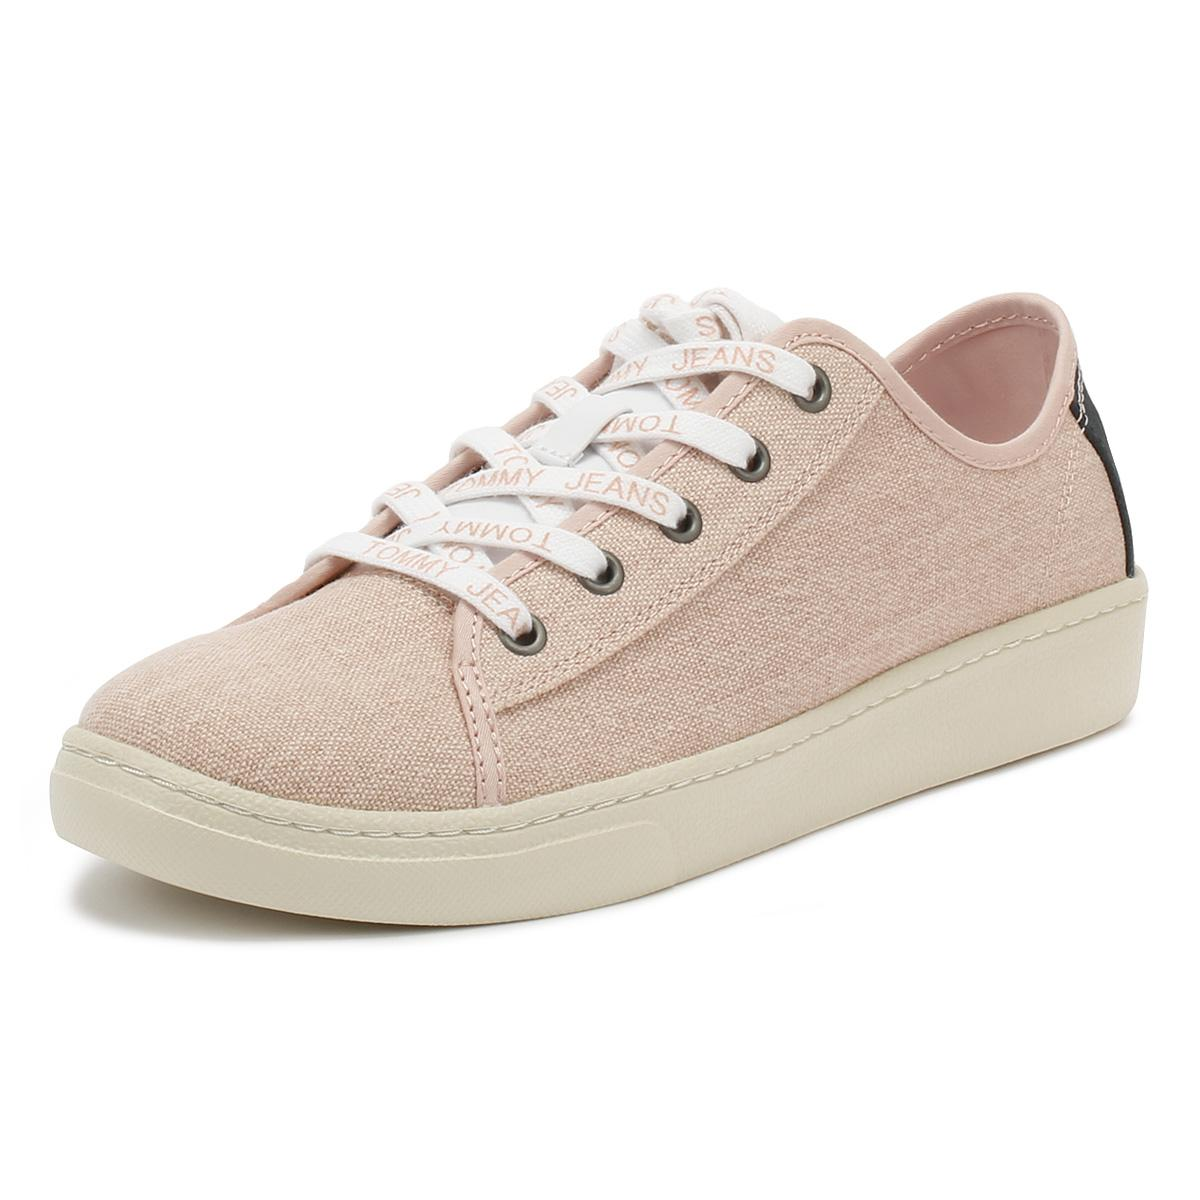 93601095e381e0 ... Tommy Jeans Womens Rose Cloud Low Trainers - Lyst. View fullscreen